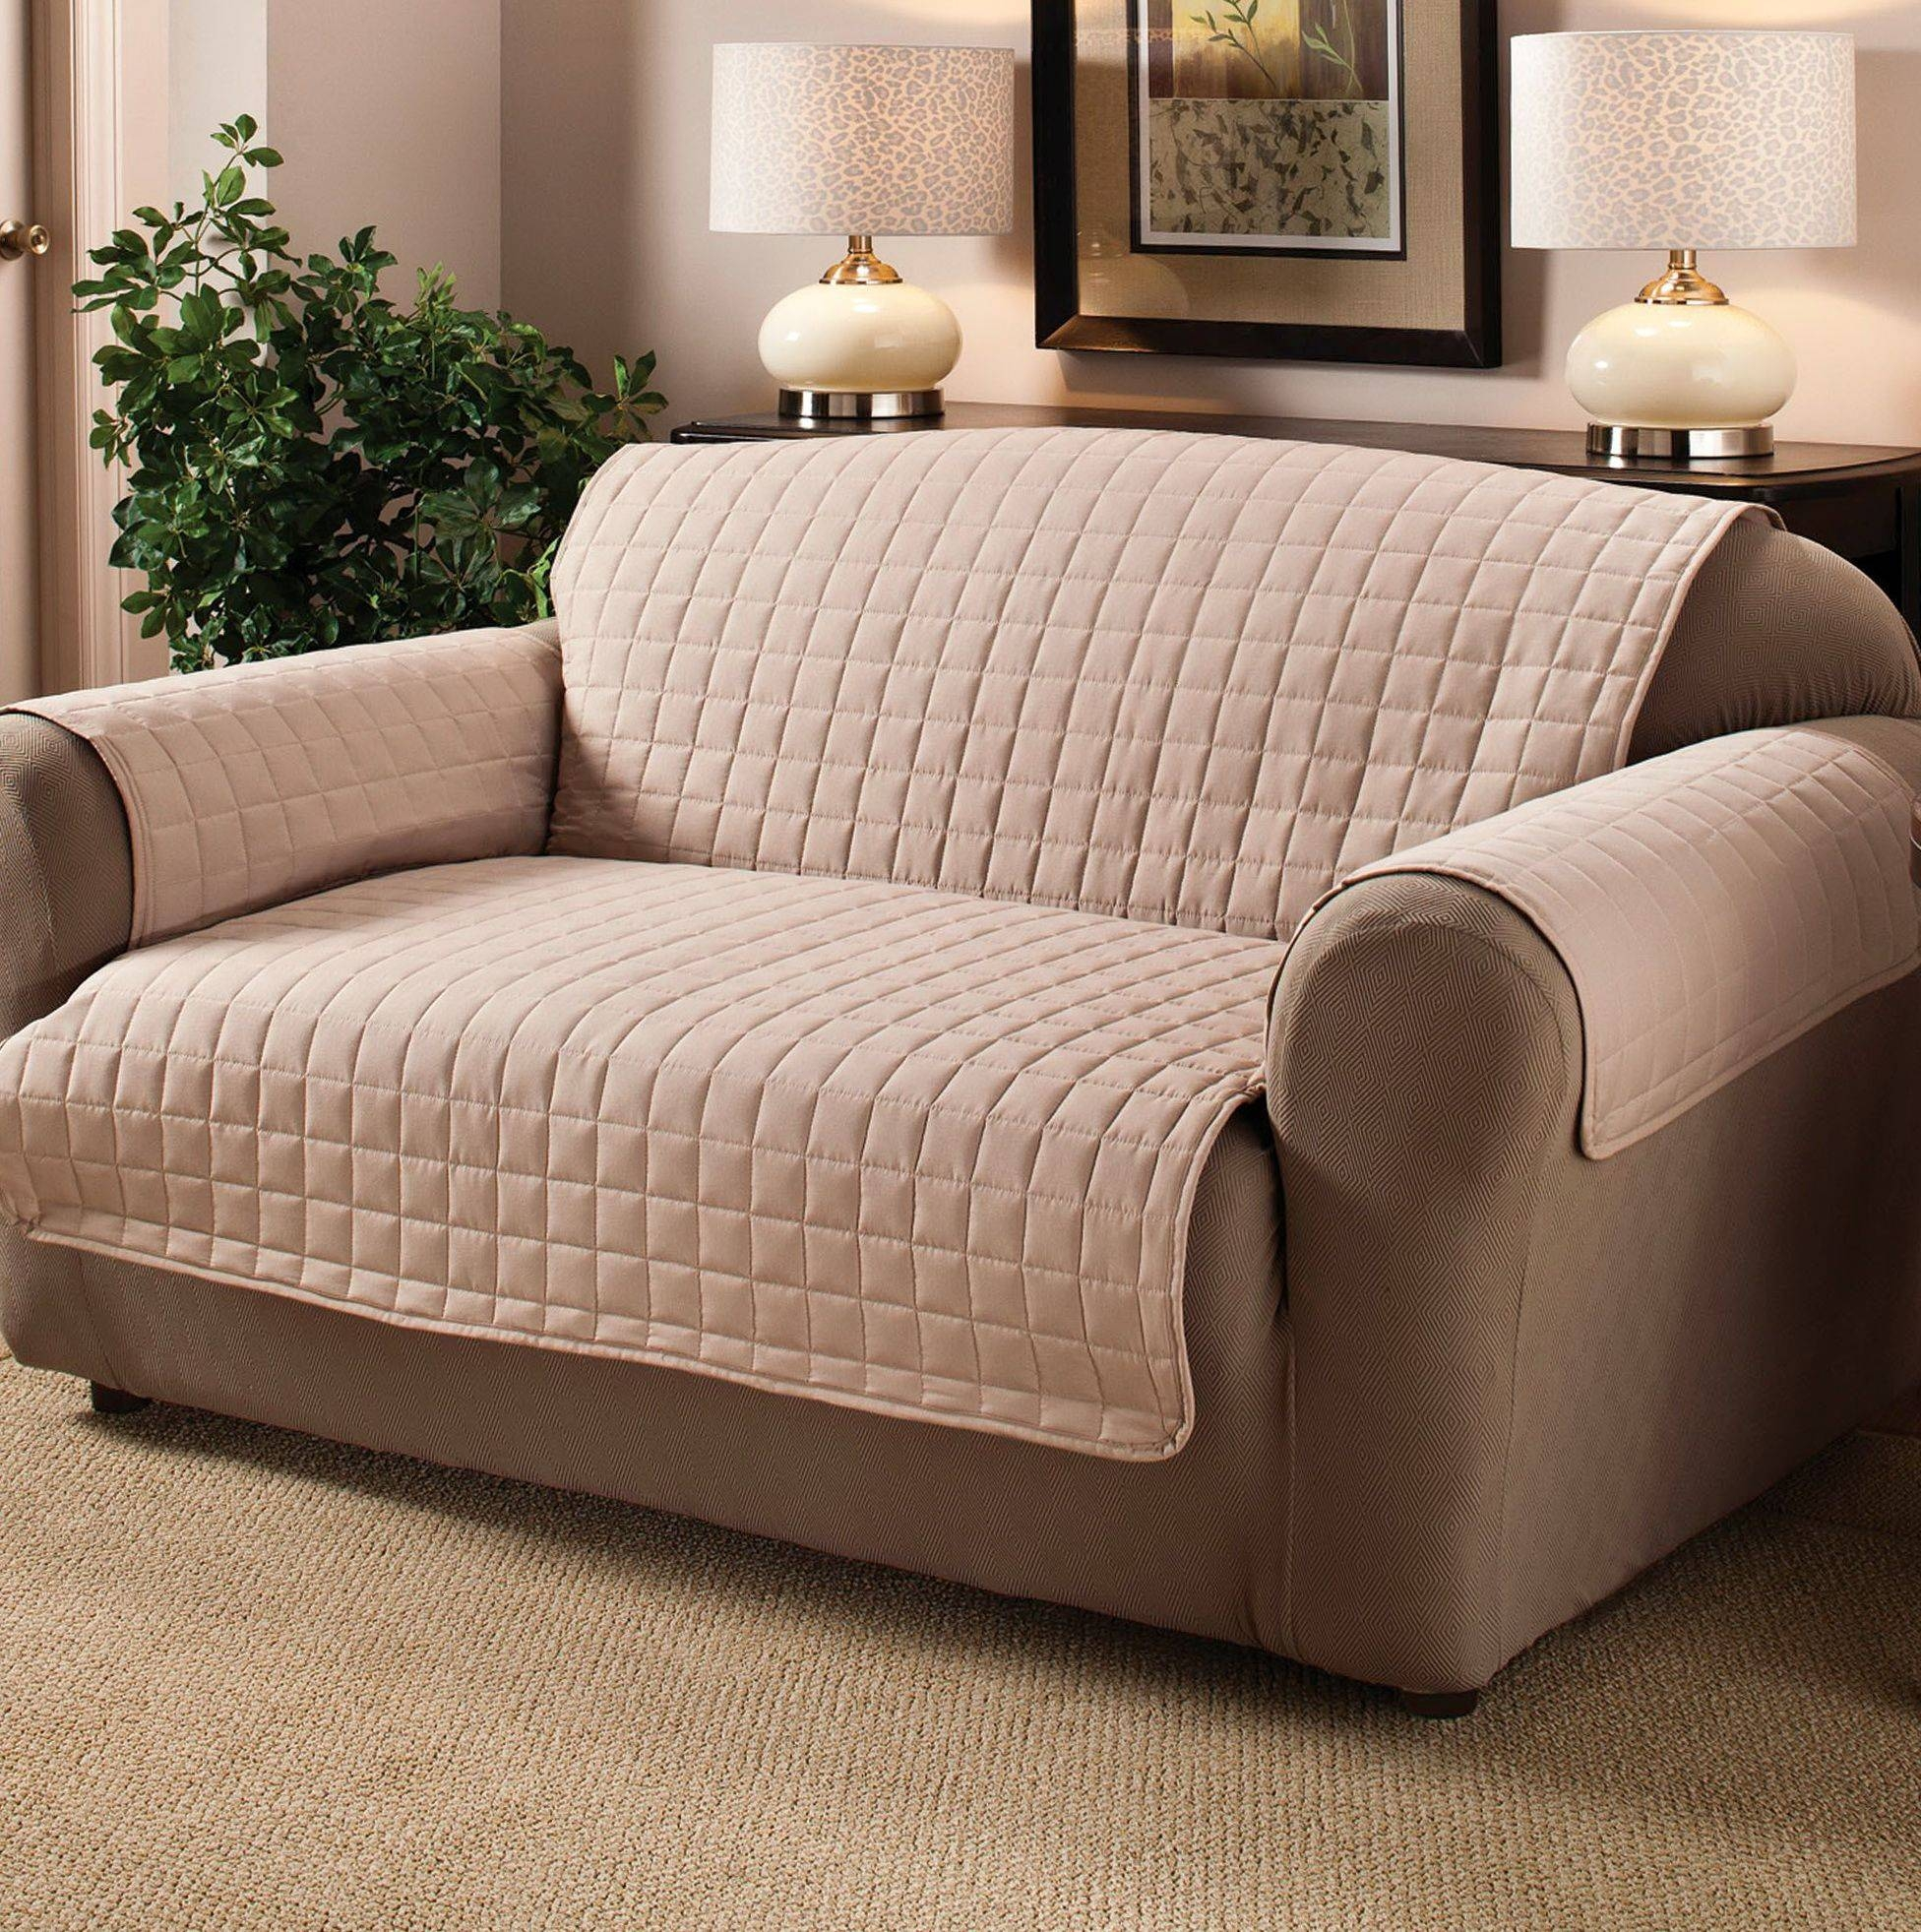 Furniture: Sofa Covers At Walmart | Walmart Slipcovers | Couchcovers Intended For Sofas Cover For Sectional Sofas (View 8 of 15)